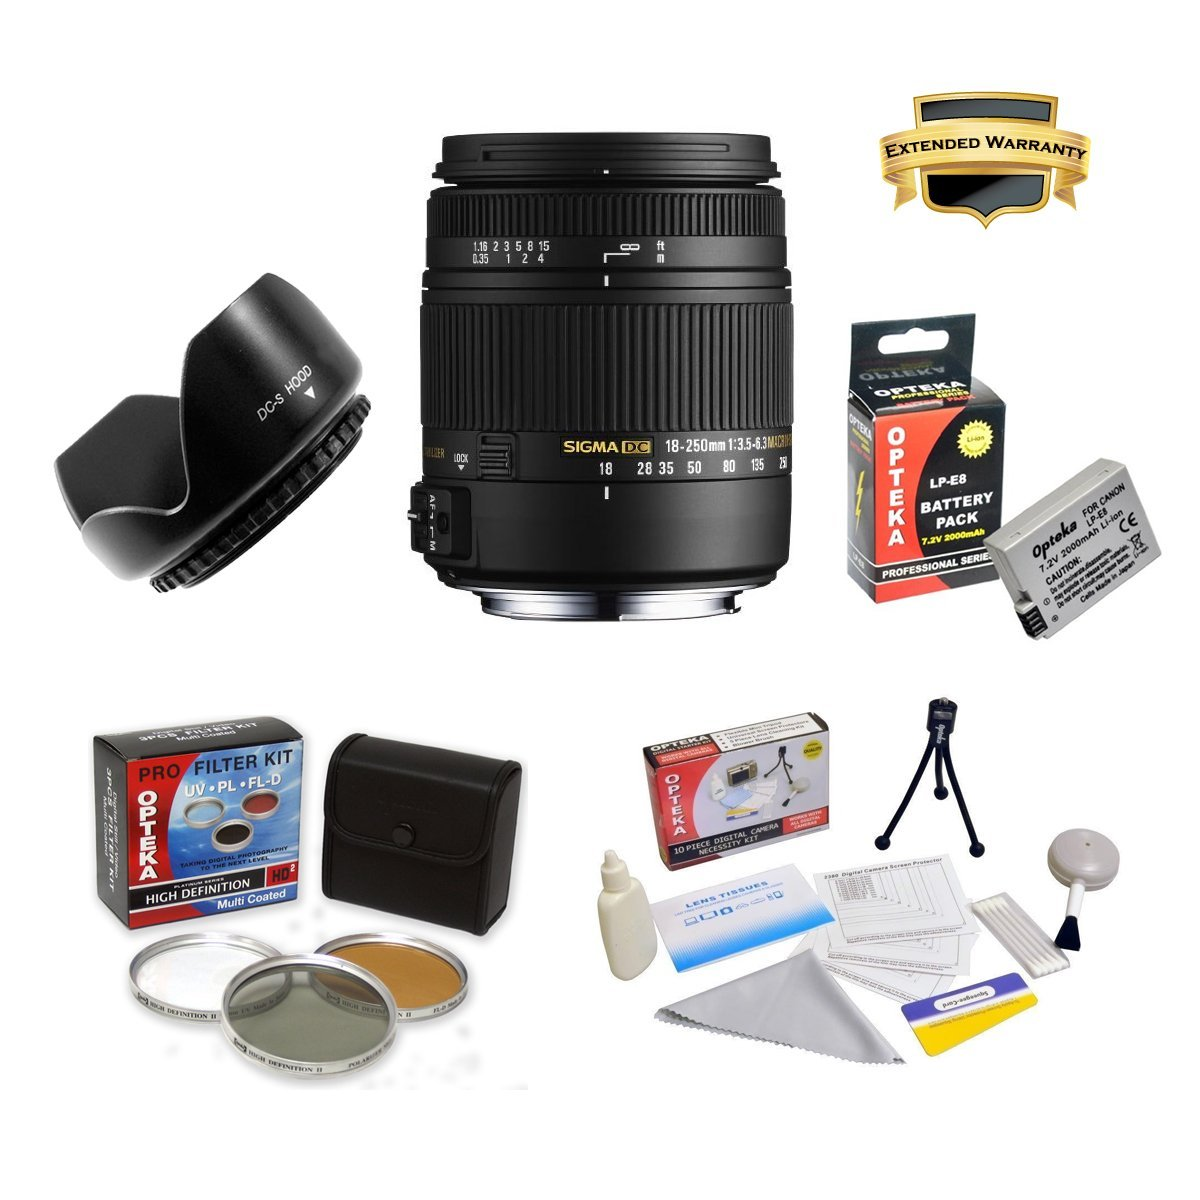 Sigma 18-250mm f/3.5-6.3 DC OS HSM IF Lens Specific for t...